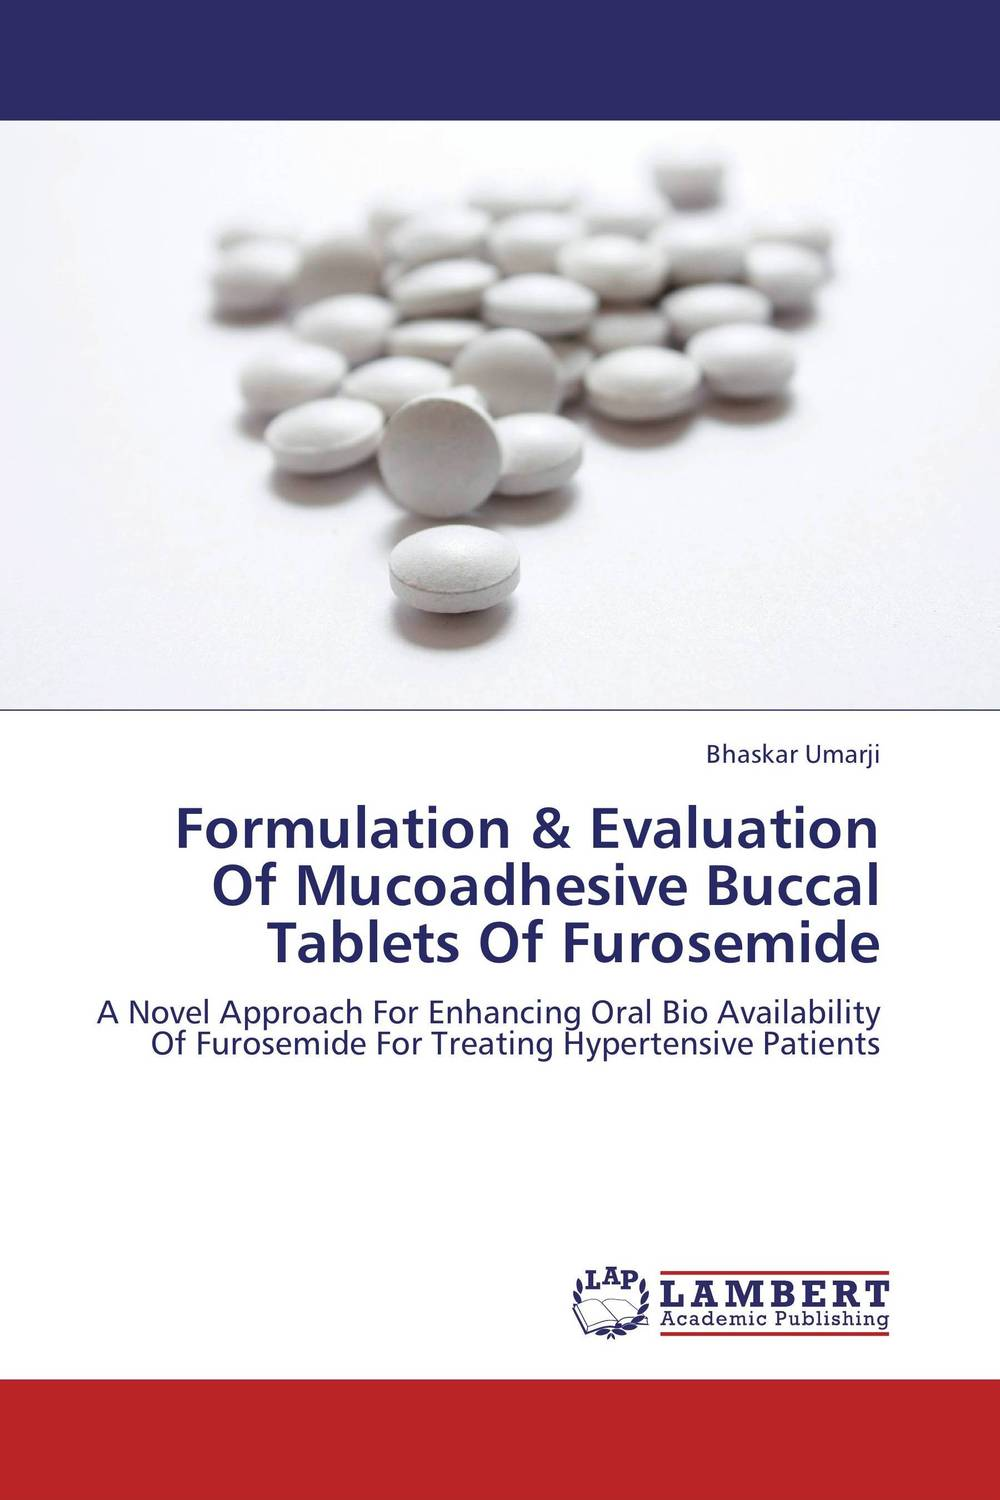 Formulation & Evaluation Of Mucoadhesive Buccal Tablets Of Furosemide vipul p patel in vitro dissolution enhancement of felodipine